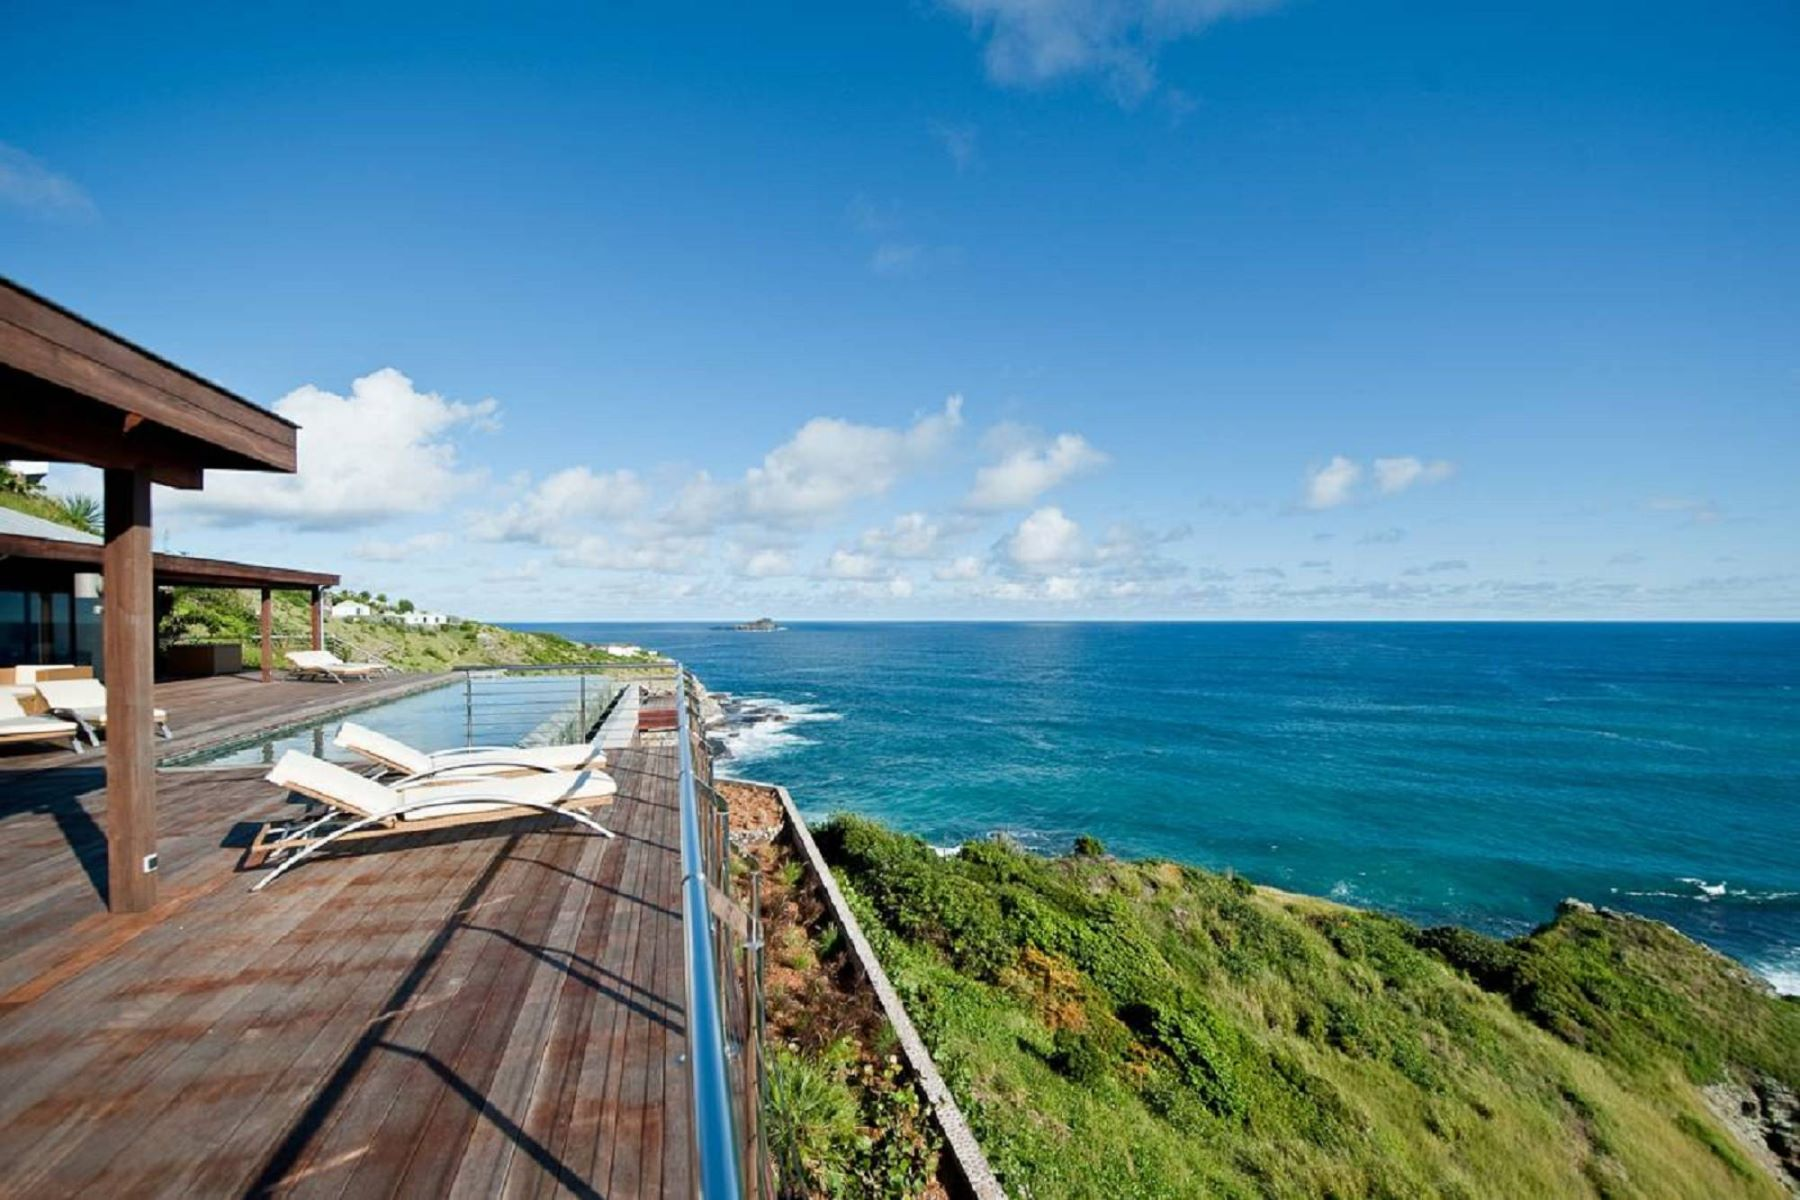 Single Family Homes for Sale at Villa Seascape Pointe Milou Pointe Milou, Cities In St. Barthelemy 97133 St. Barthelemy